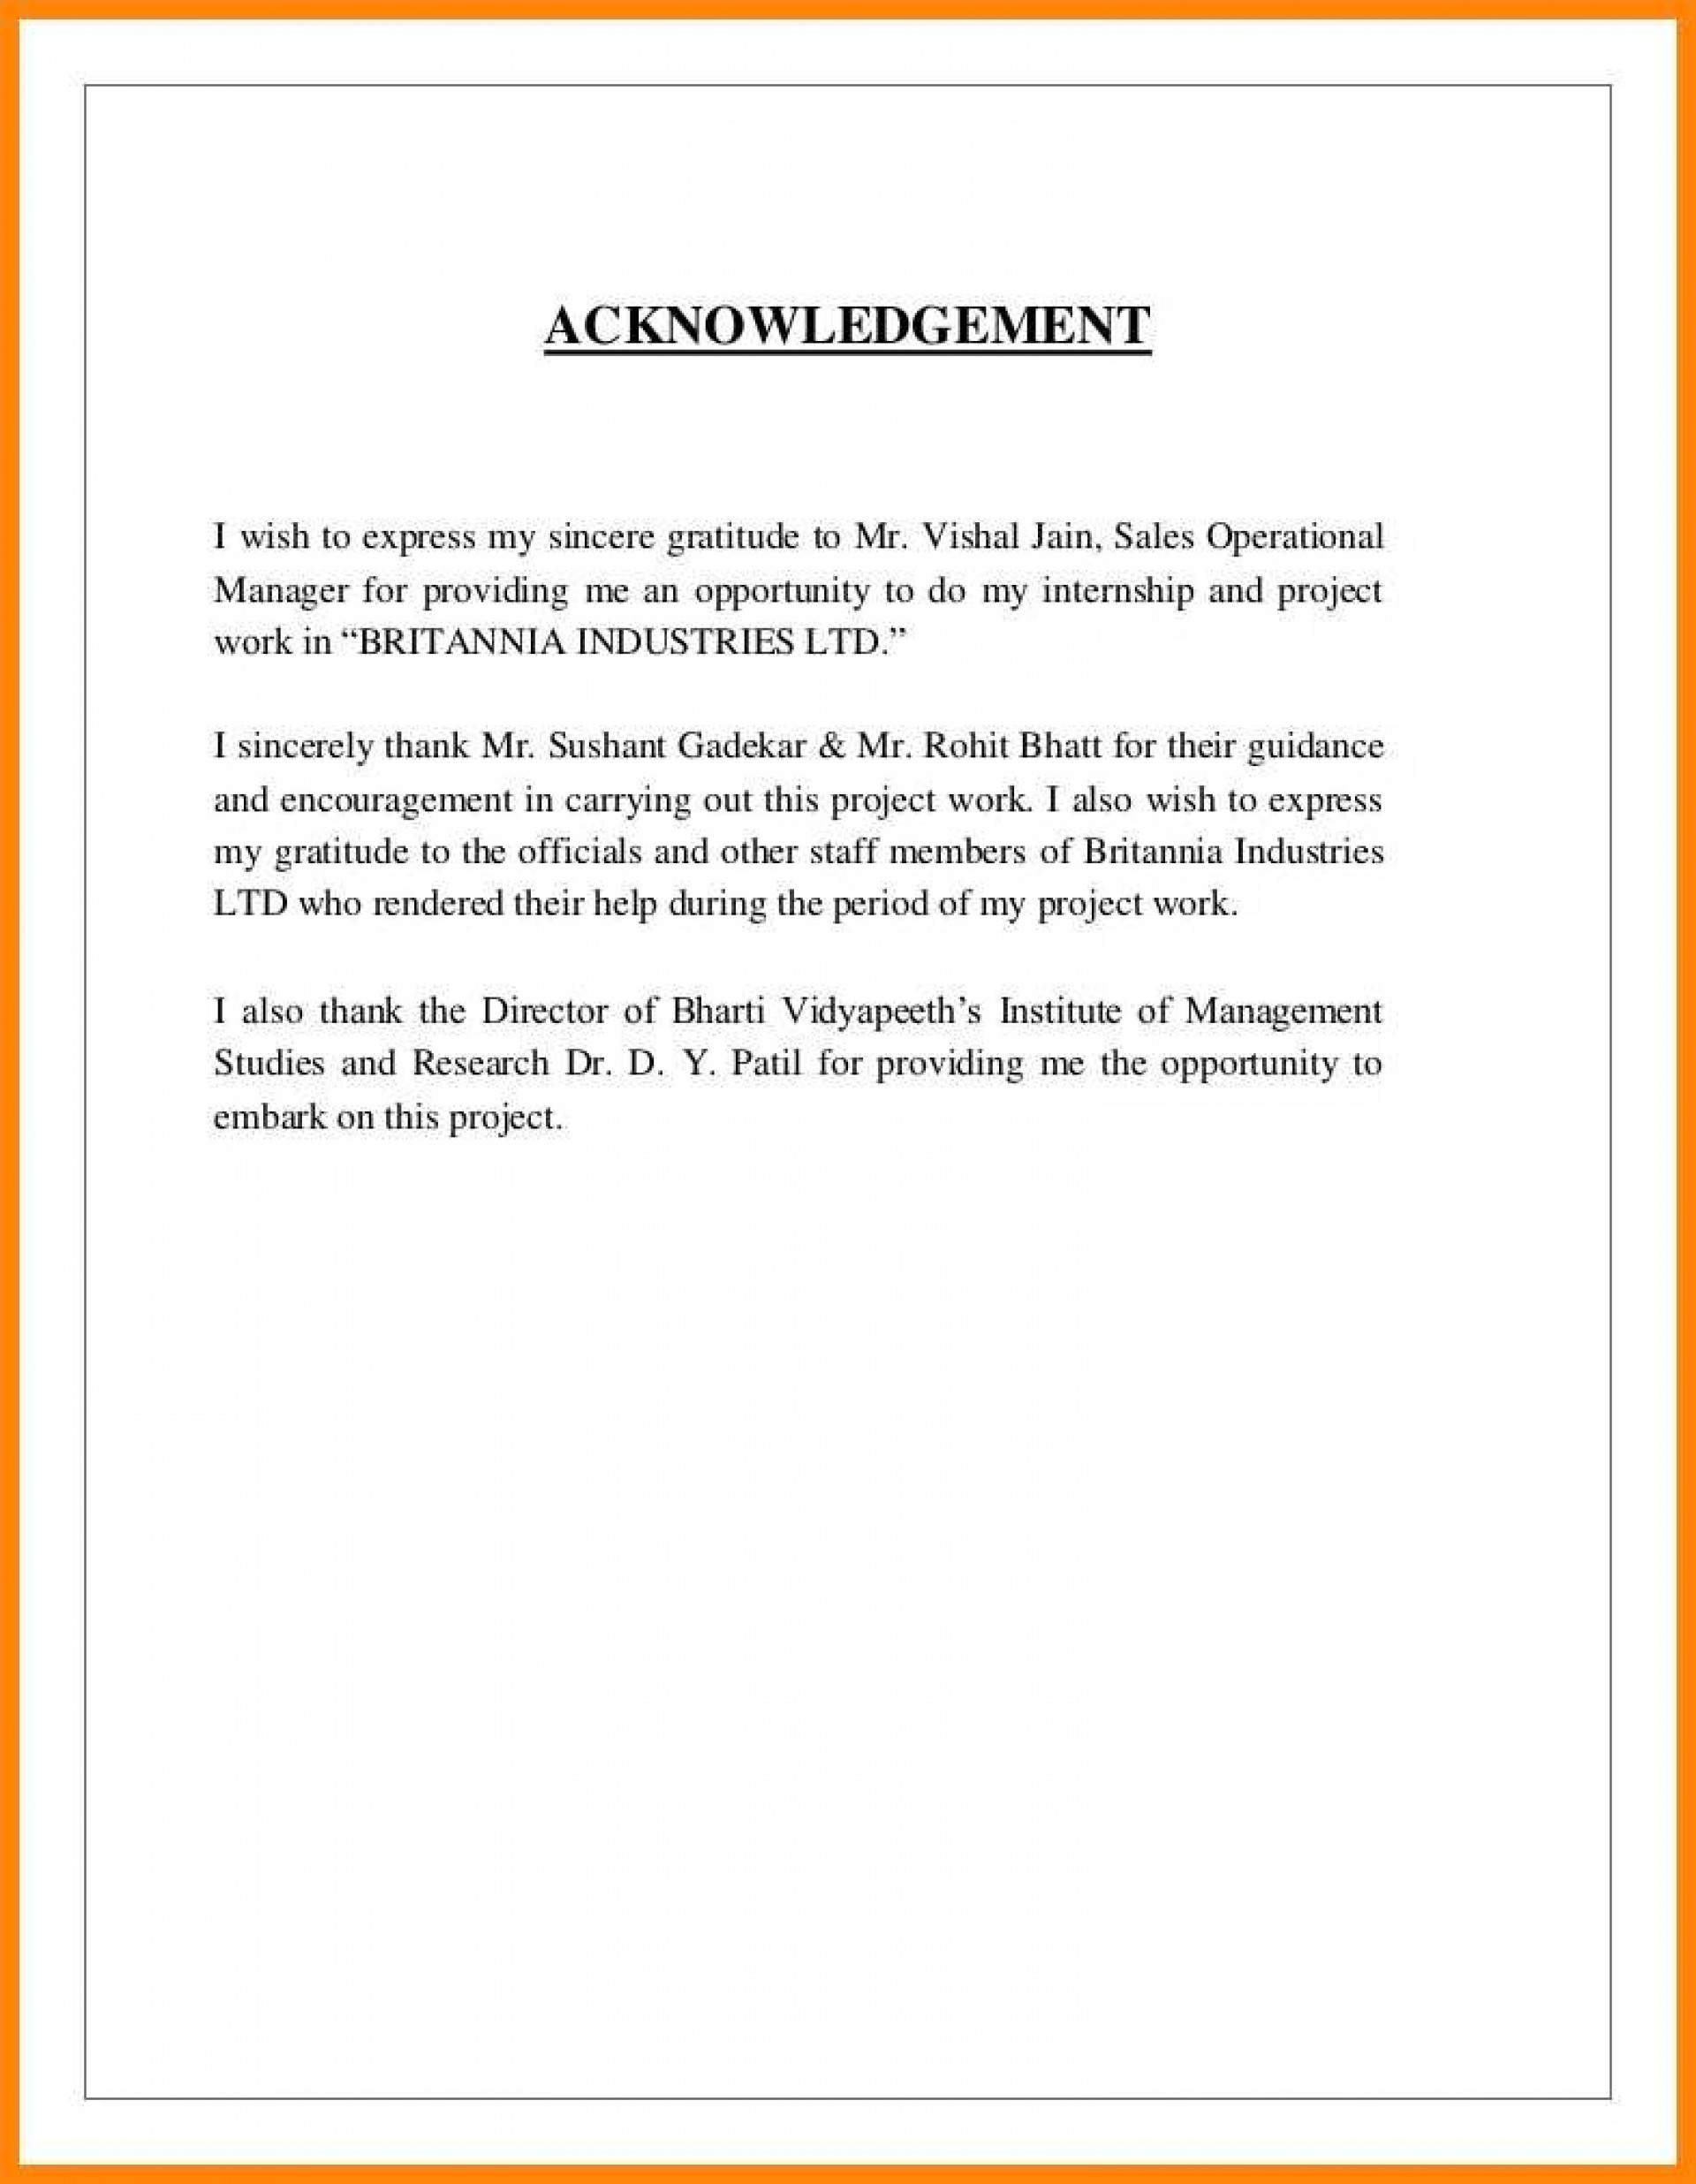 007 Research Paper Acknowledgement For Examples Sample Of 13 Striking 1920